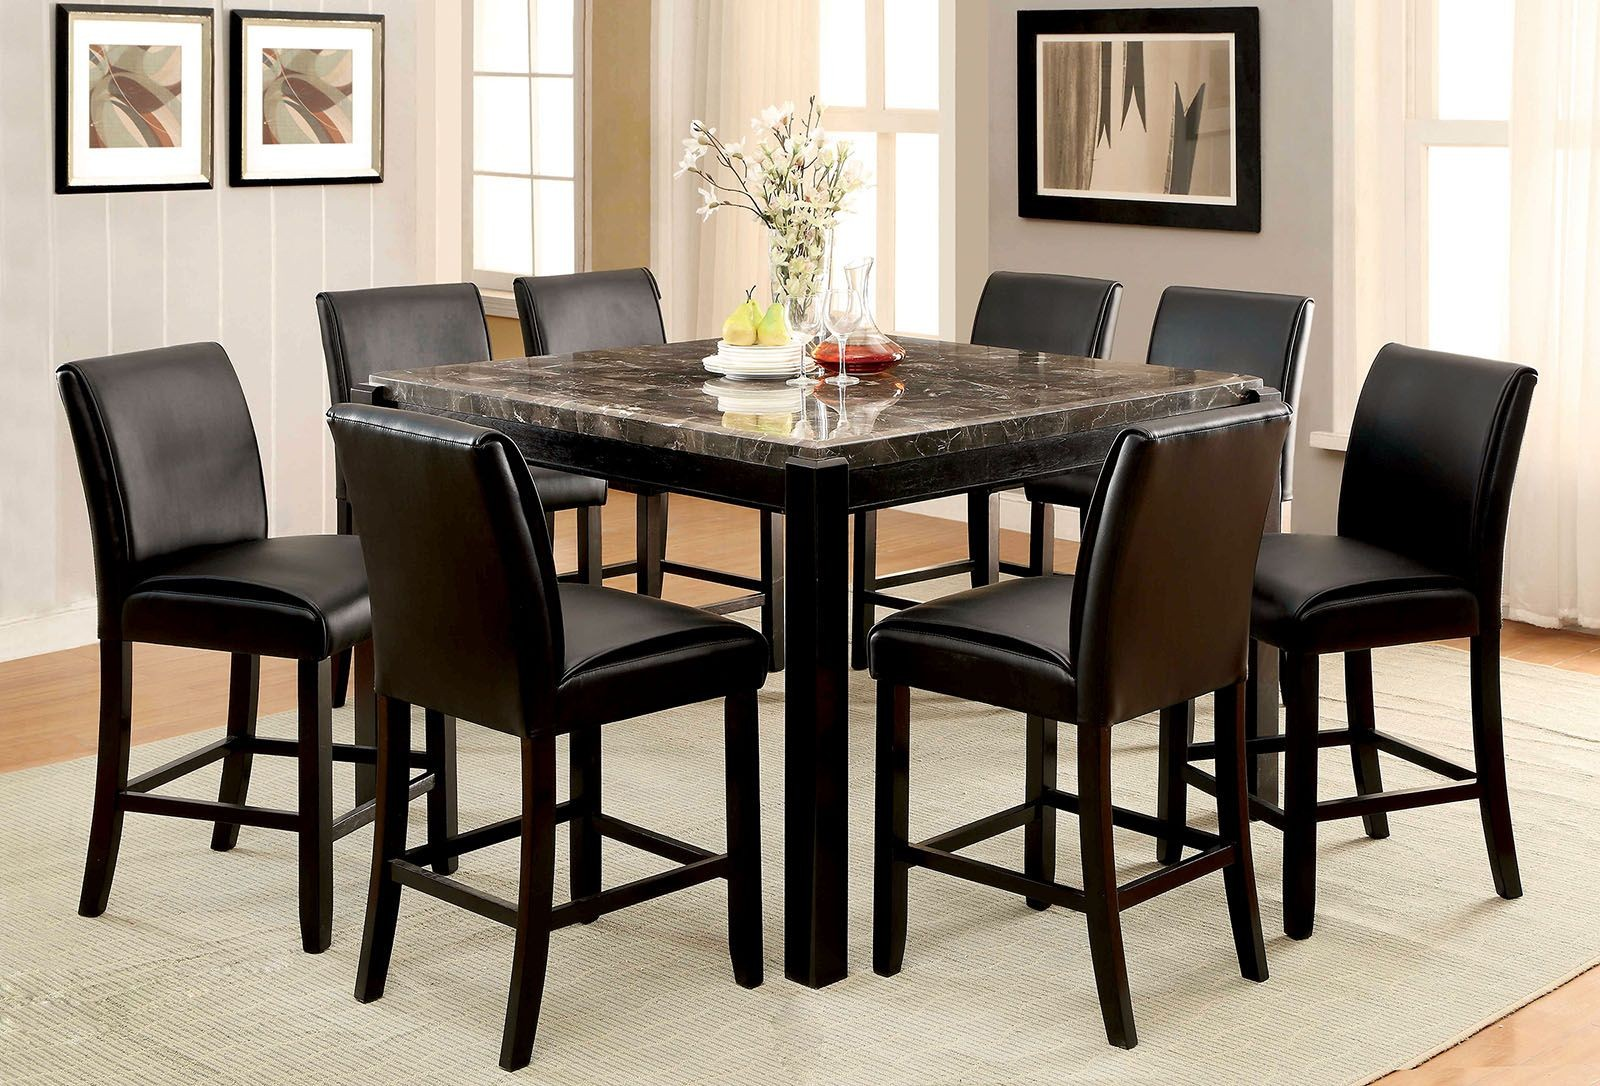 Gladstone I Gray Marble Top Counter Height Dining Room Set